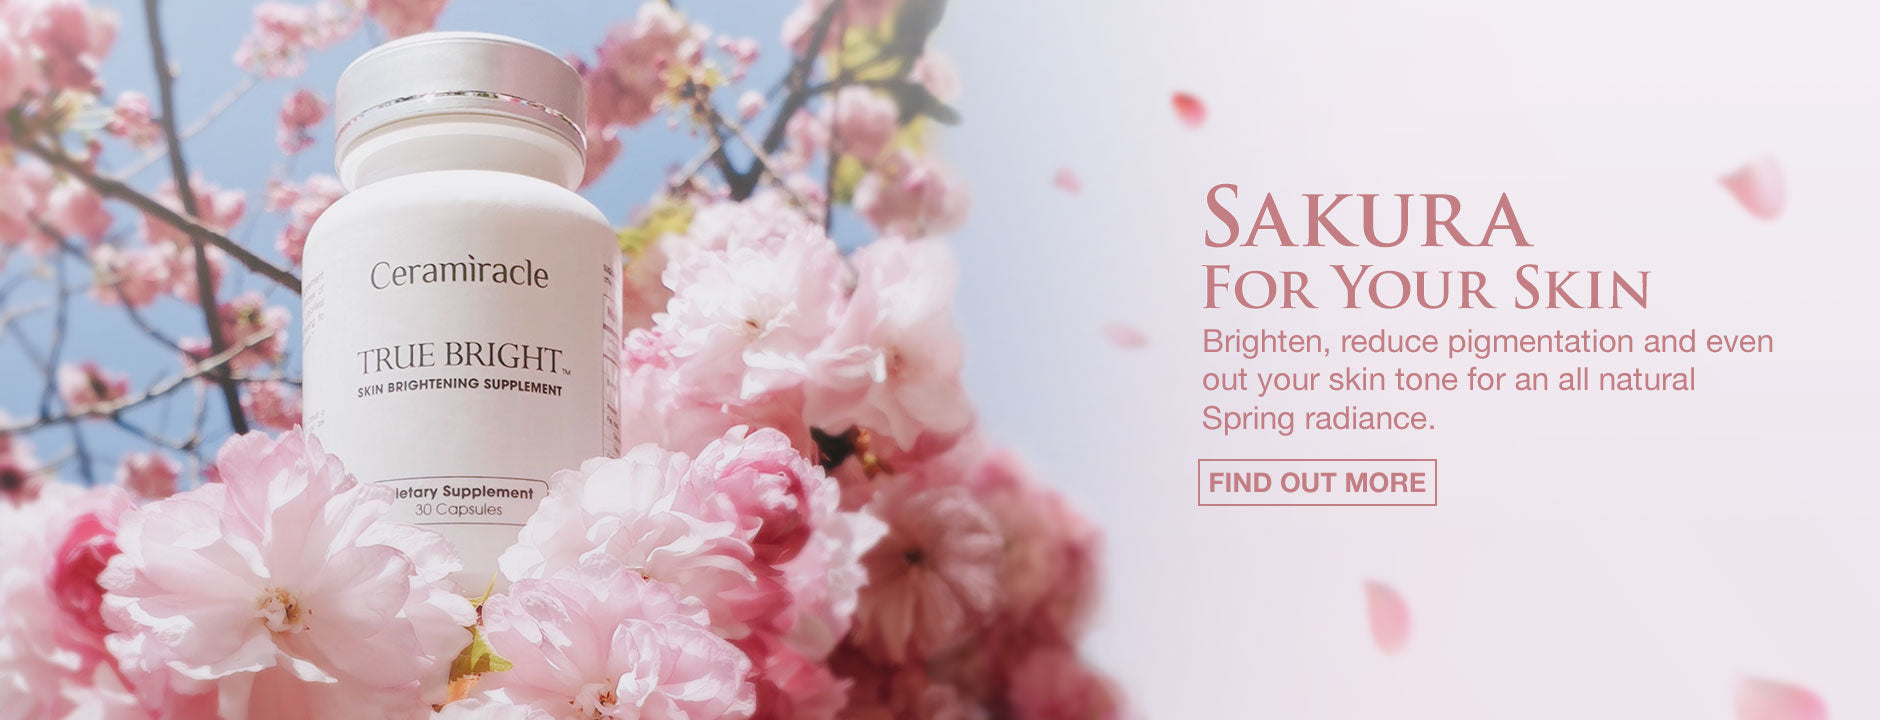 Sakura for your skin